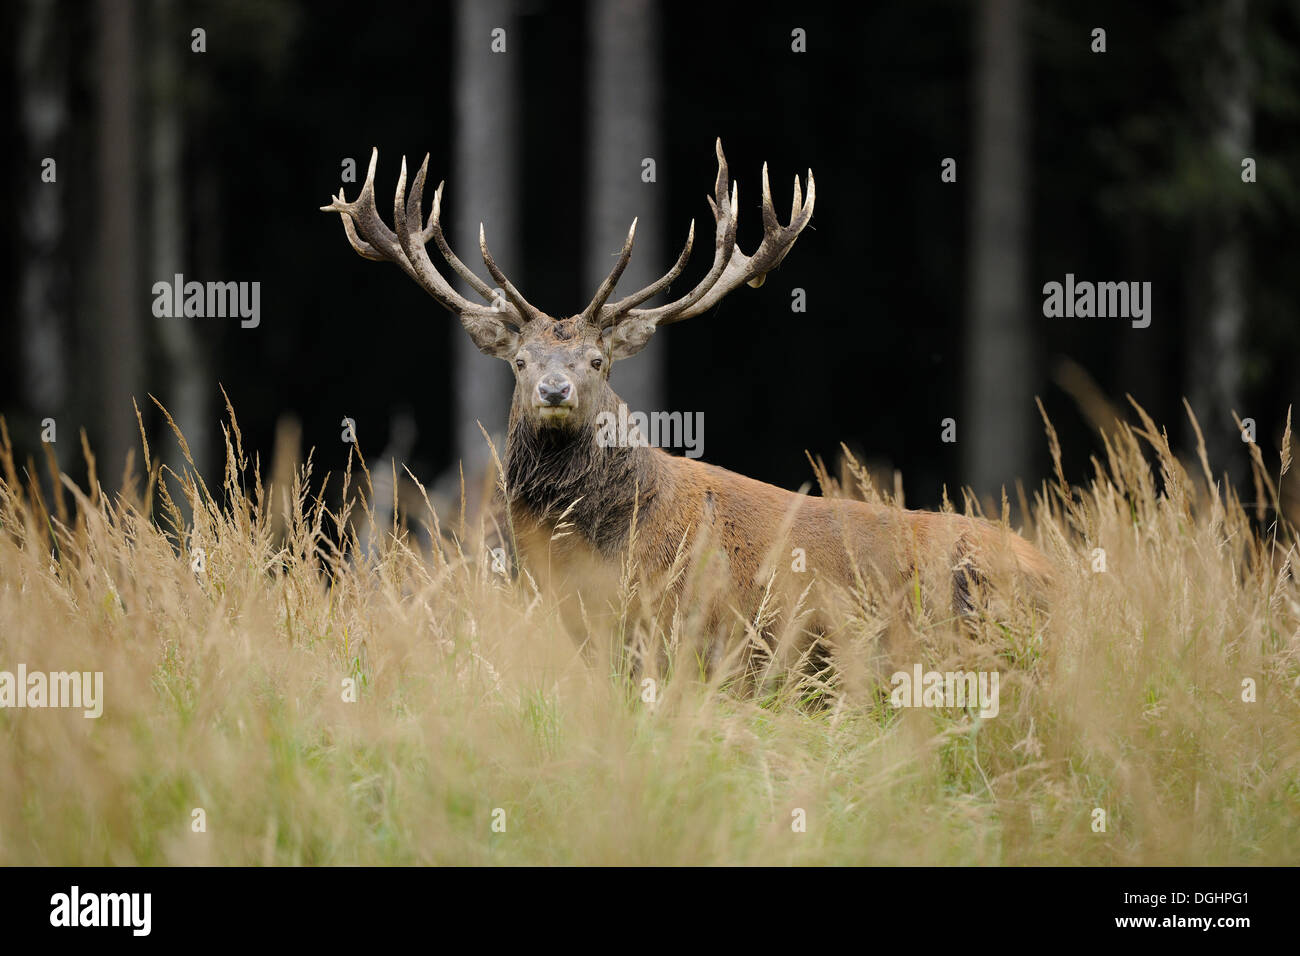 Red deer (Cervus elaphus), stag, captive, Lower Saxony, Germany - Stock Image